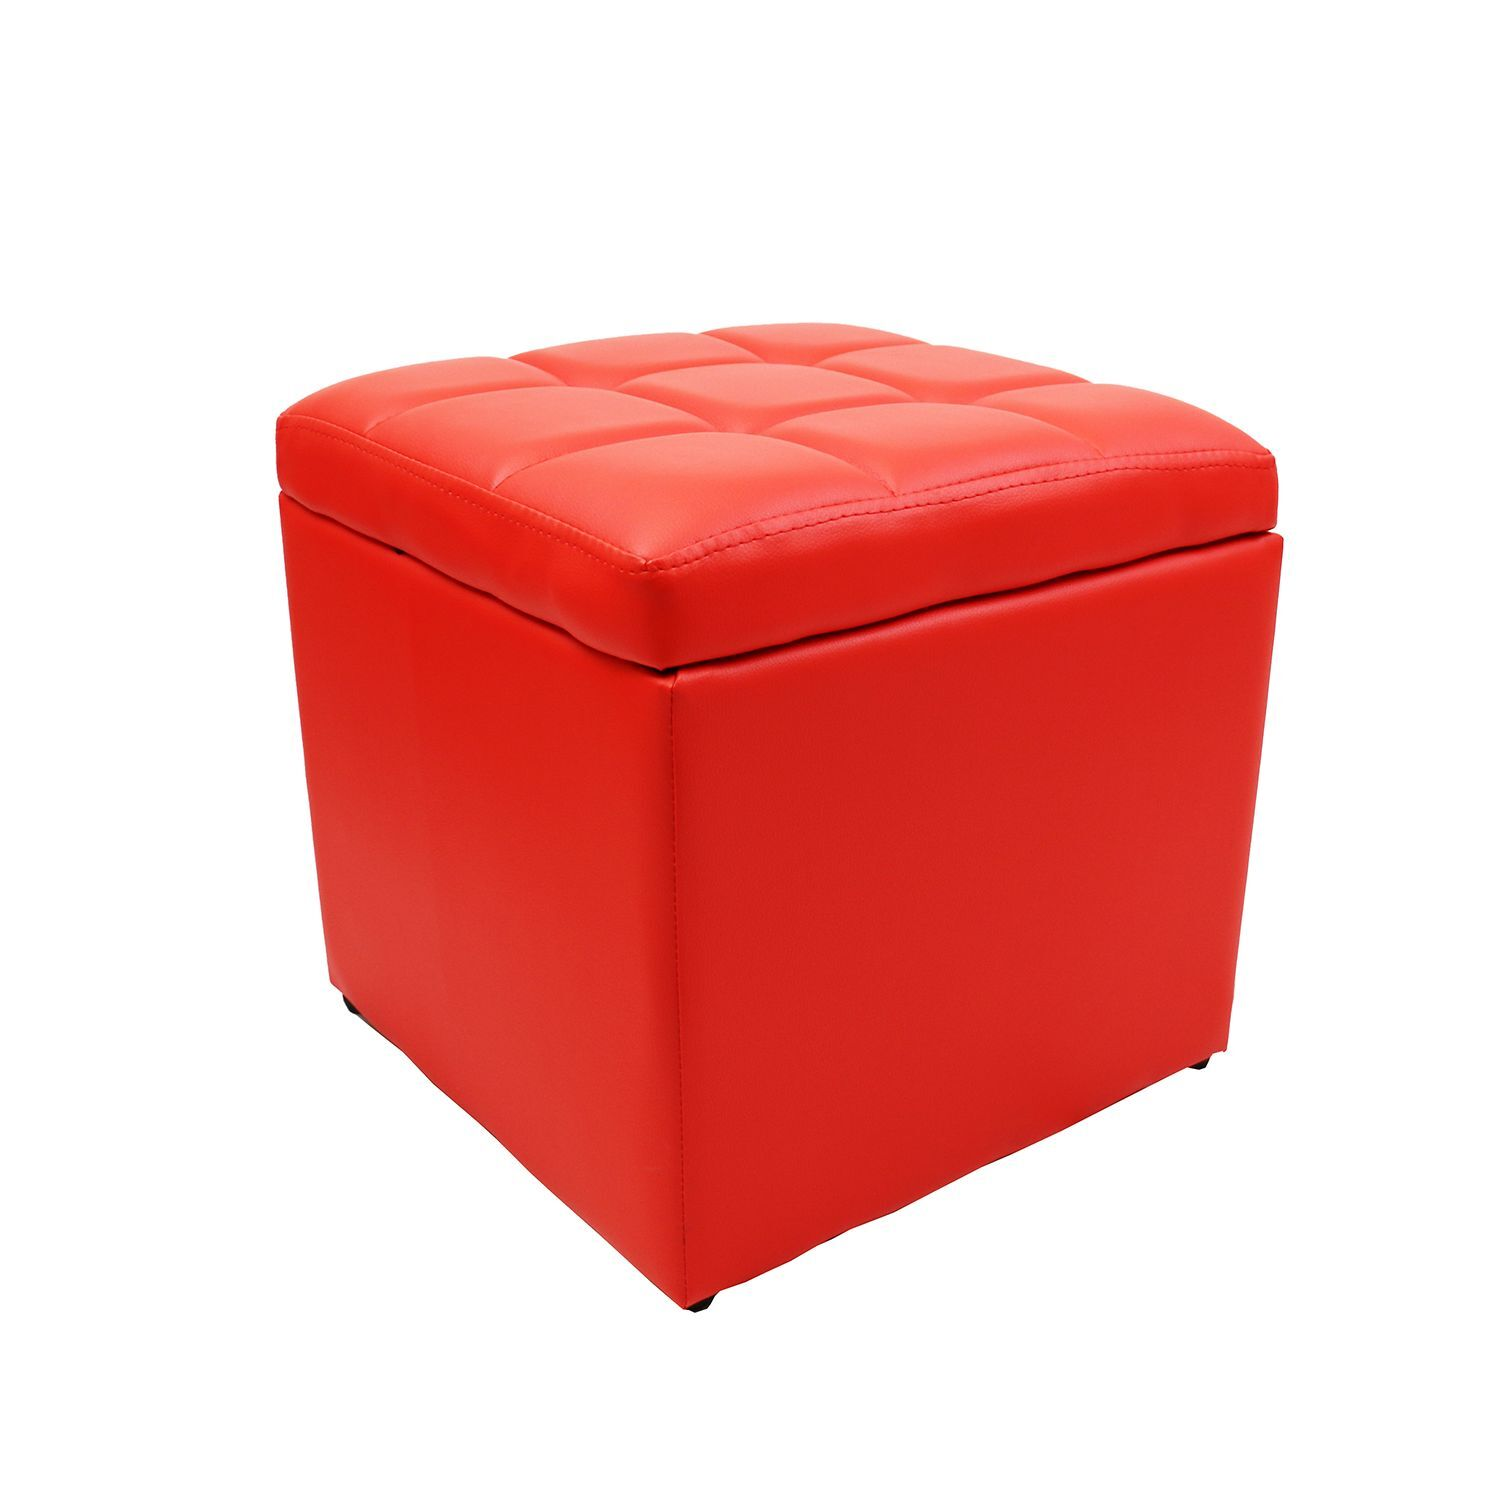 Strong Unfold Leather Storage Ottoman Bench Footstool Seat